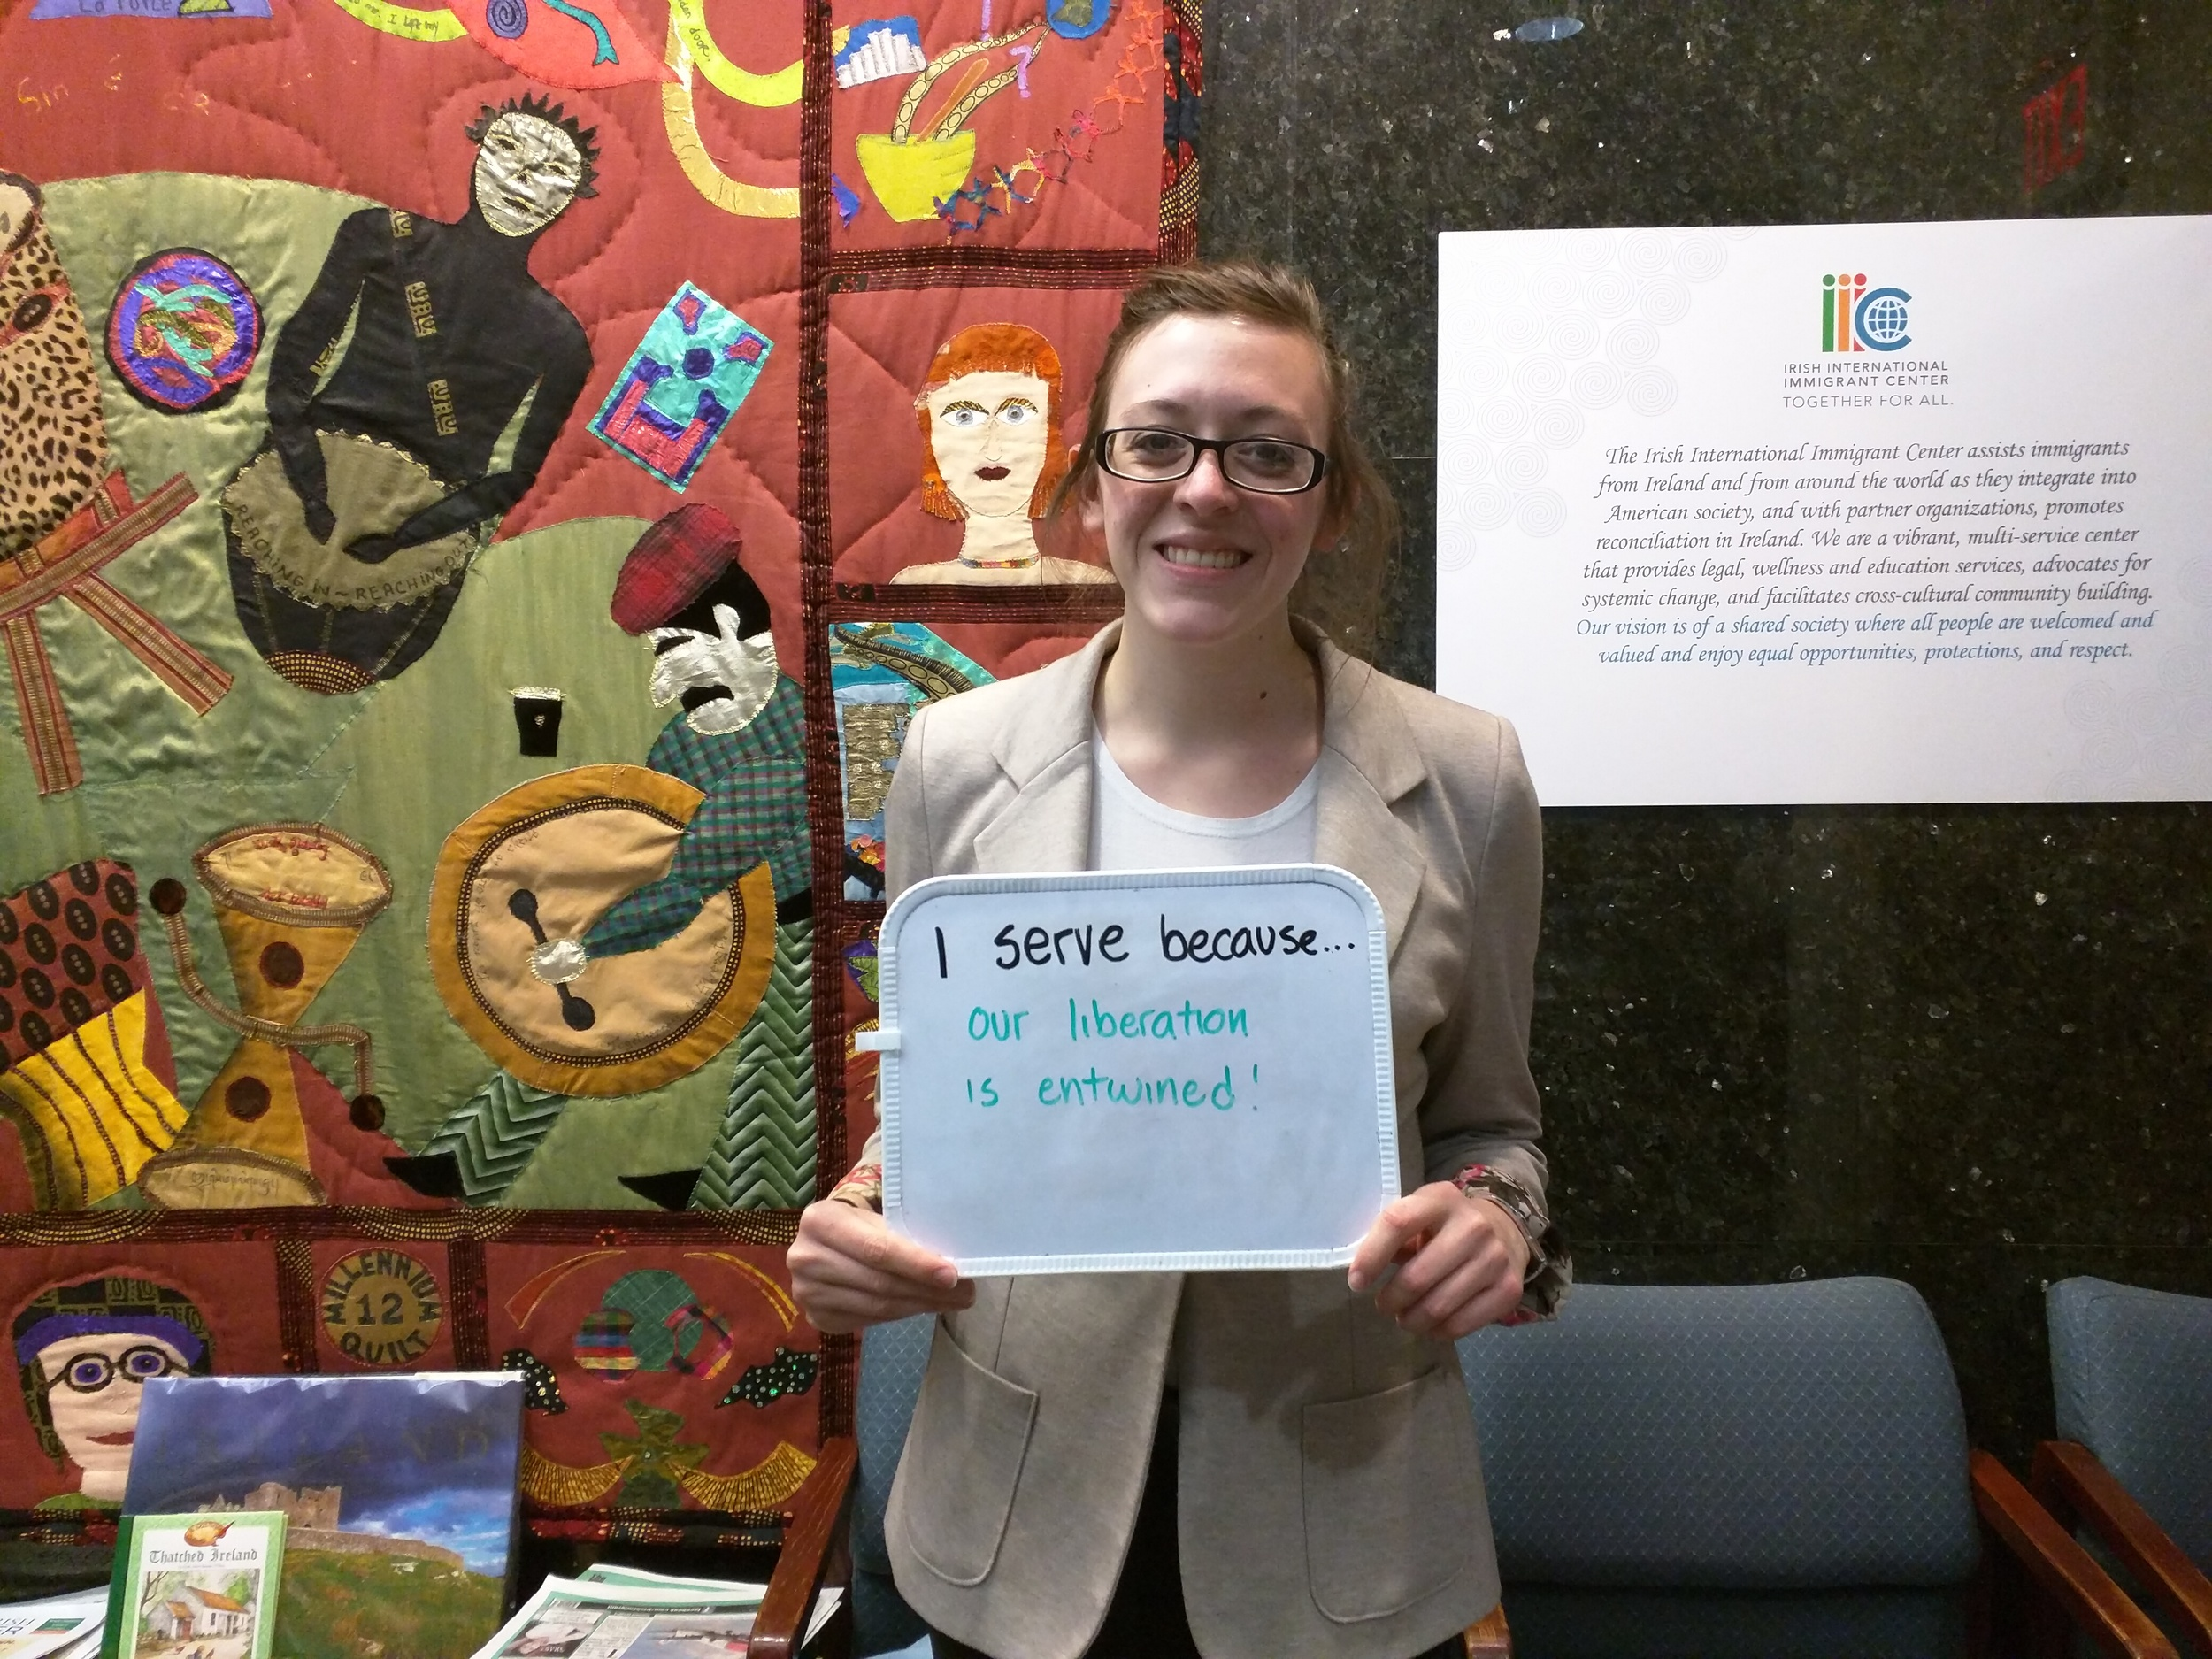 """""""I serve because...our liberation is entwined"""" - Gabrielle Crossnoe, Micah Fellow at Irish International Immigrant Center & Brookline Intentional Community"""